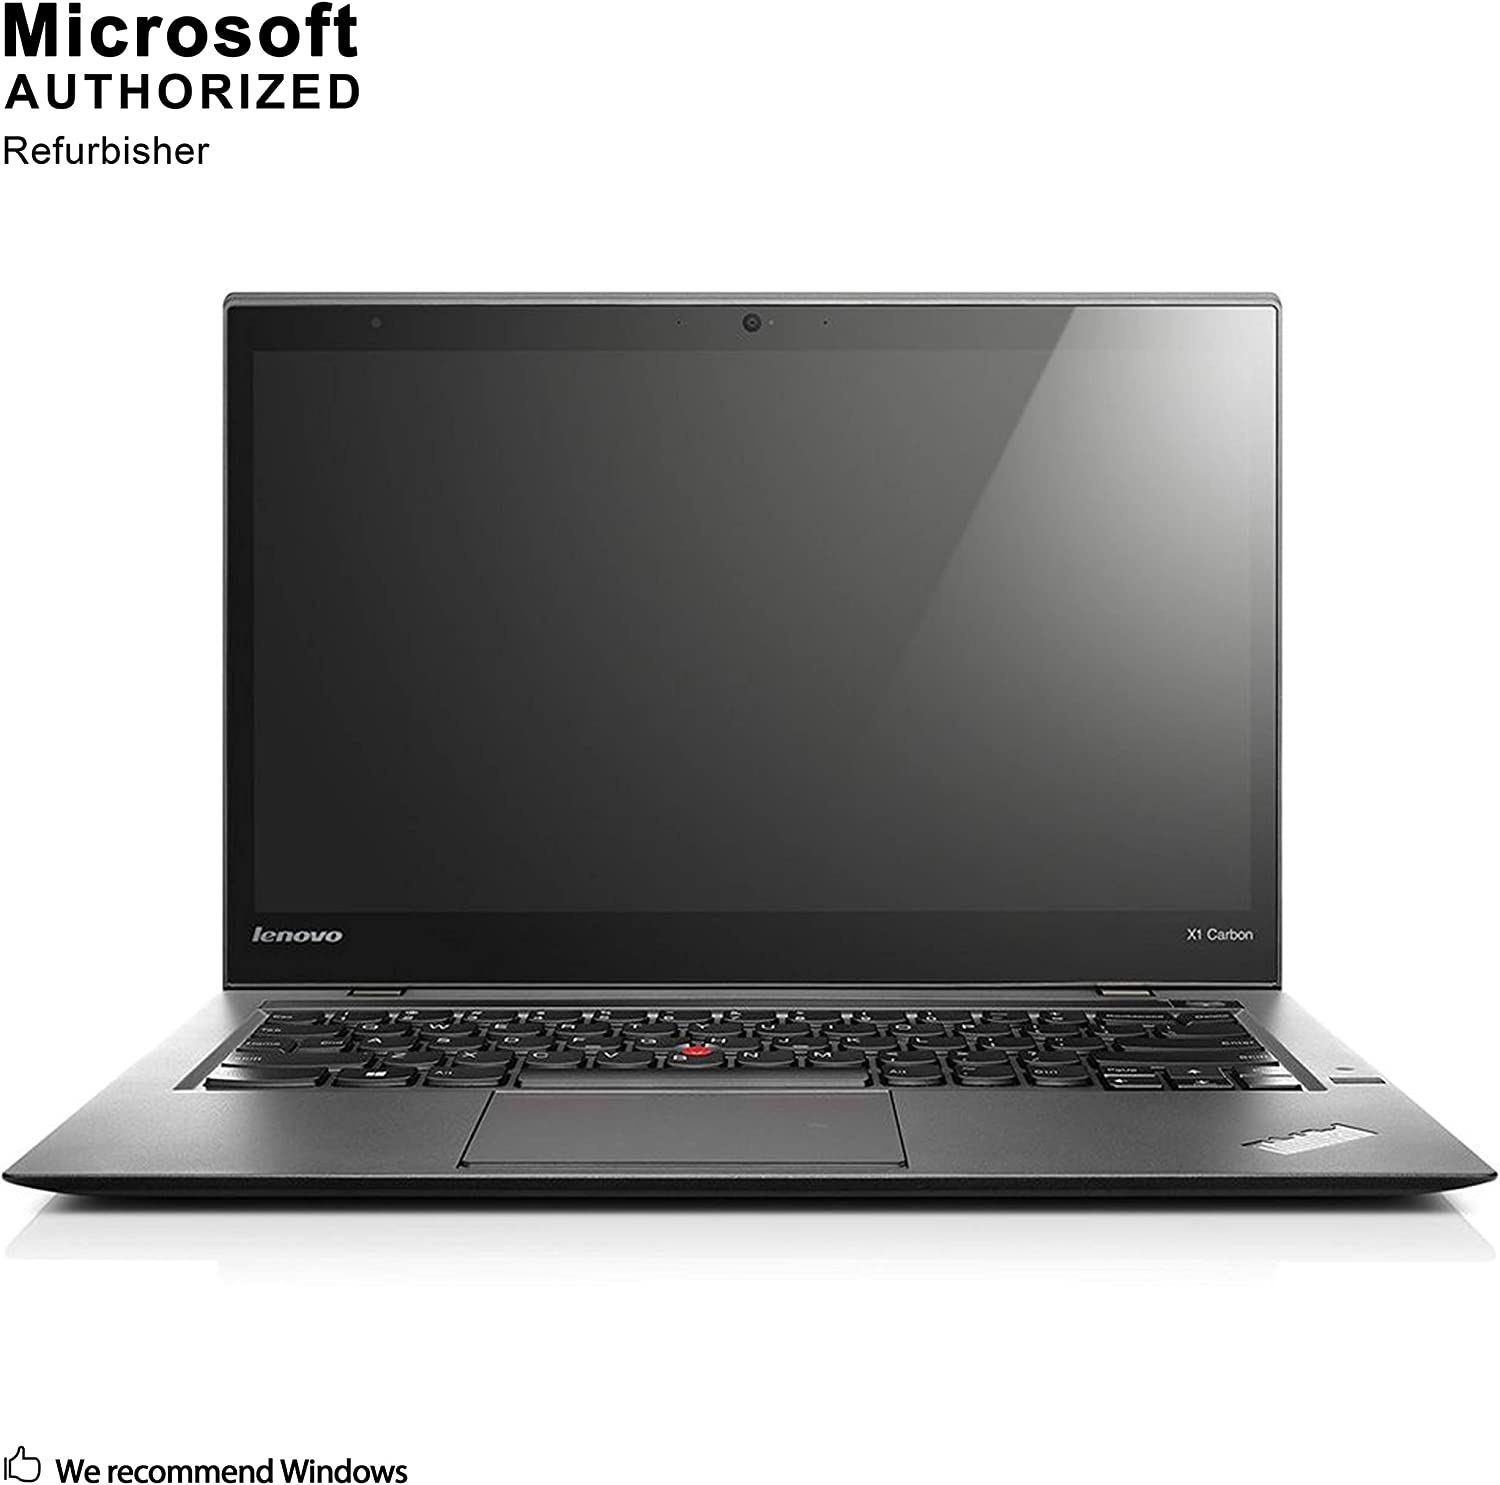 Lenovo ThinkPad X1 Carbon 14 Inch Laptop, Intel Core i5-6200U up to 2.8GHz, 8G DDR3, 256G SSD, WiFi, HDMI, MDP, Win 10 Pro 64 Bit Multi-Language Support English/French/Spanish(Renewed).